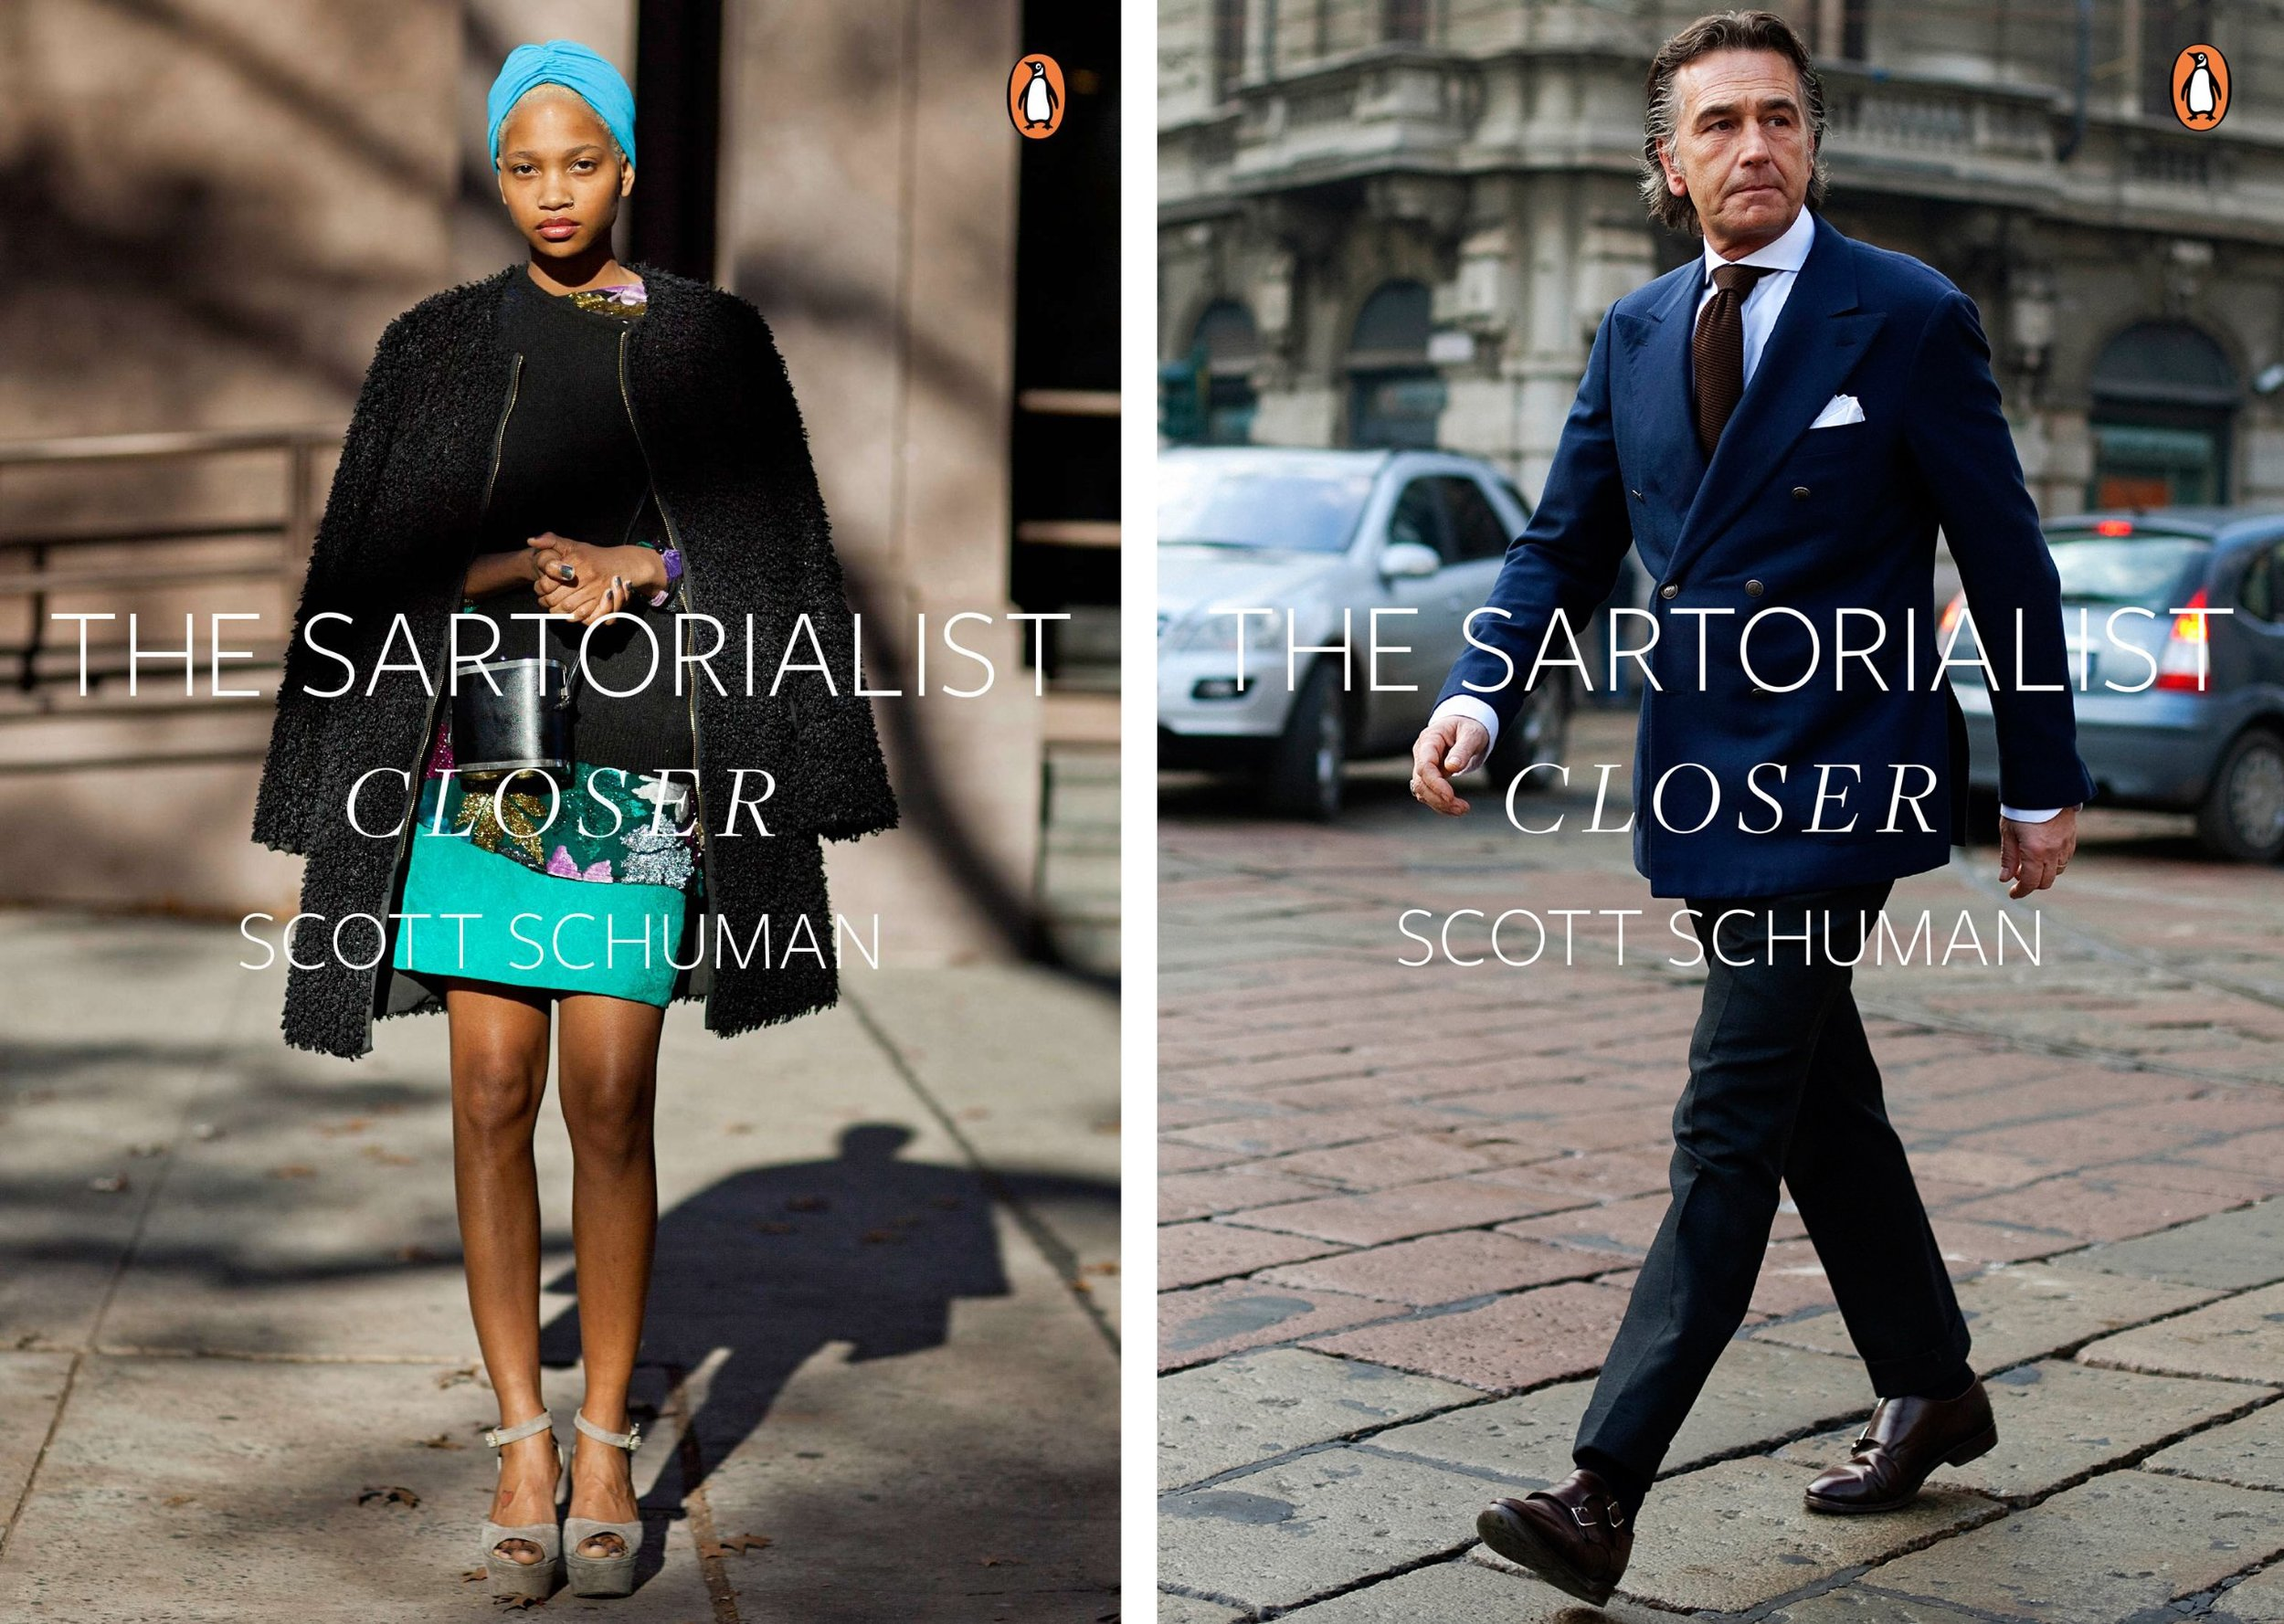 """After the enormous success of The Sartorialist, street style photogrpaher Scott Schuman is back with a completely new collection of beautiful images of the men and women who have caught his attention.""     Use the link below to purchase to help support our site!"